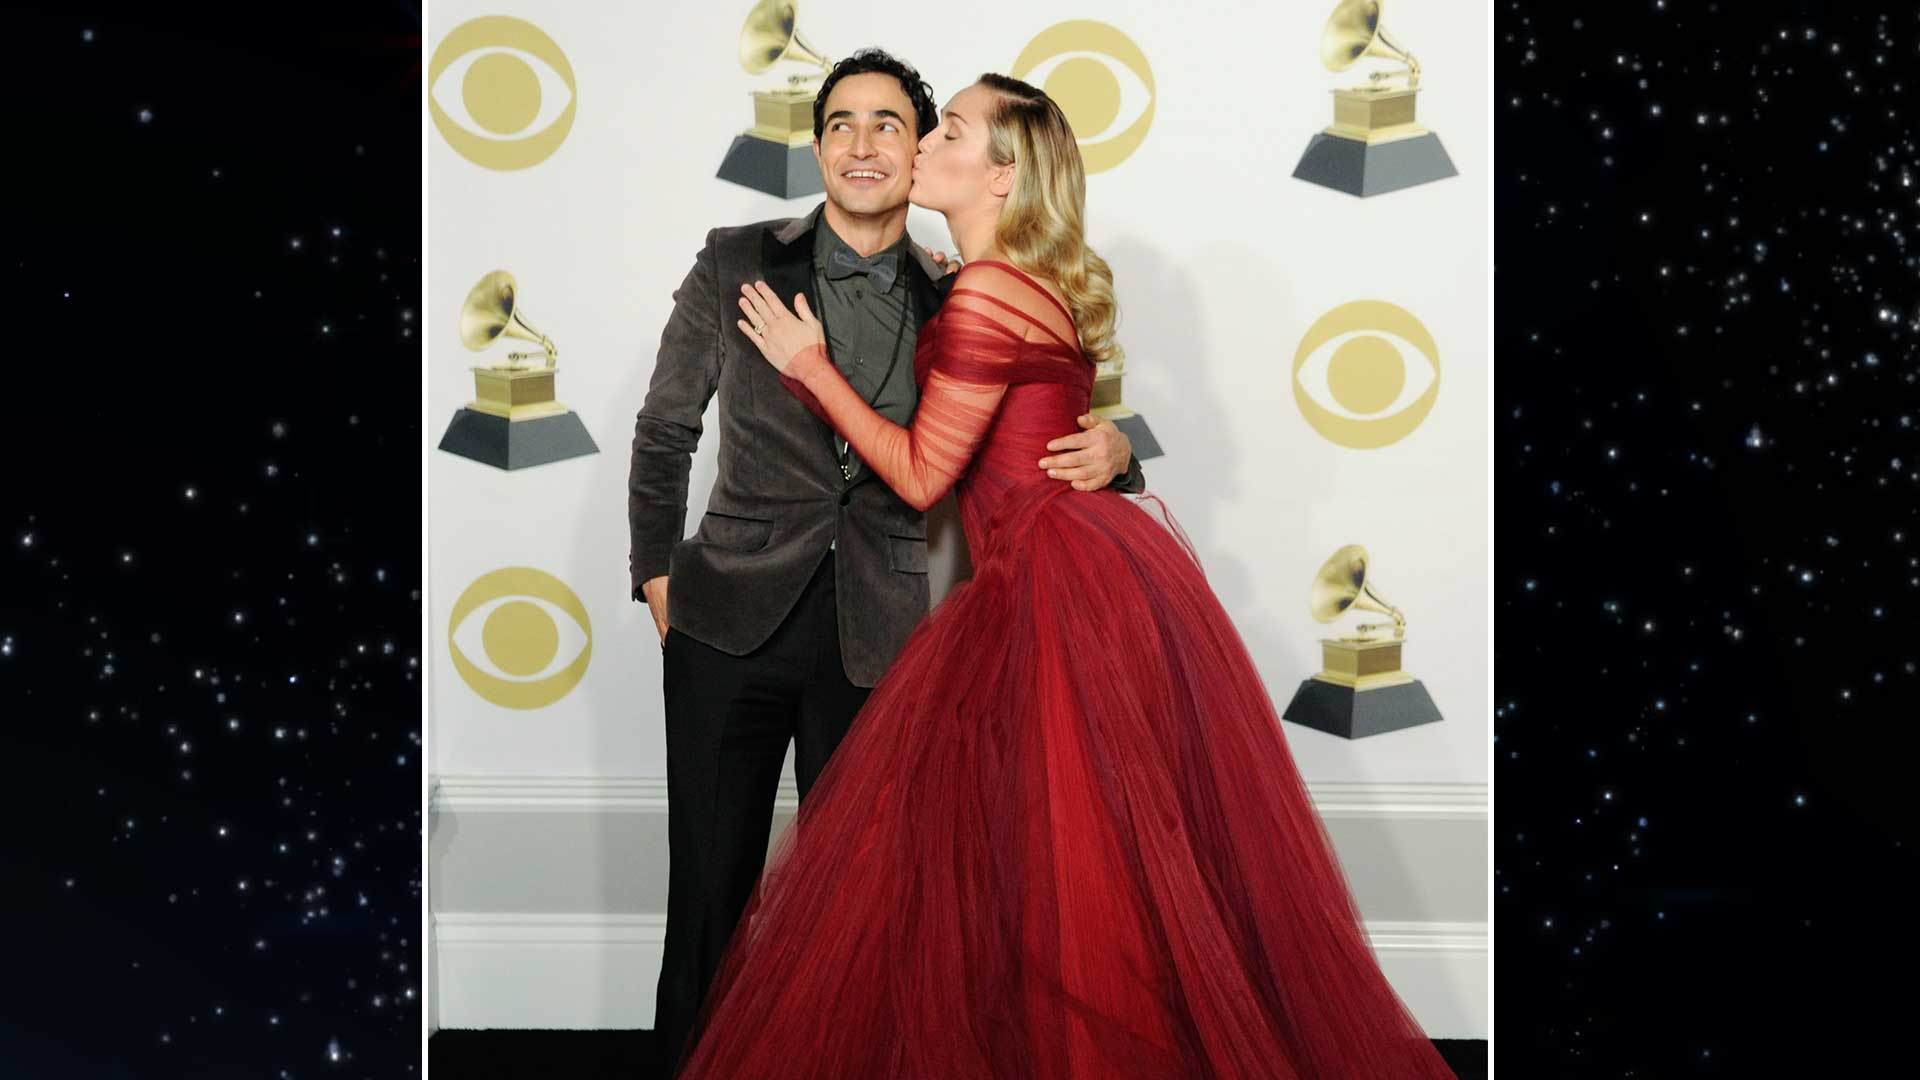 Fashion designer Zac Posen gets a kiss on the cheek from performer Miley Cyrus in the 60th Annual GRAMMY Awards press room.